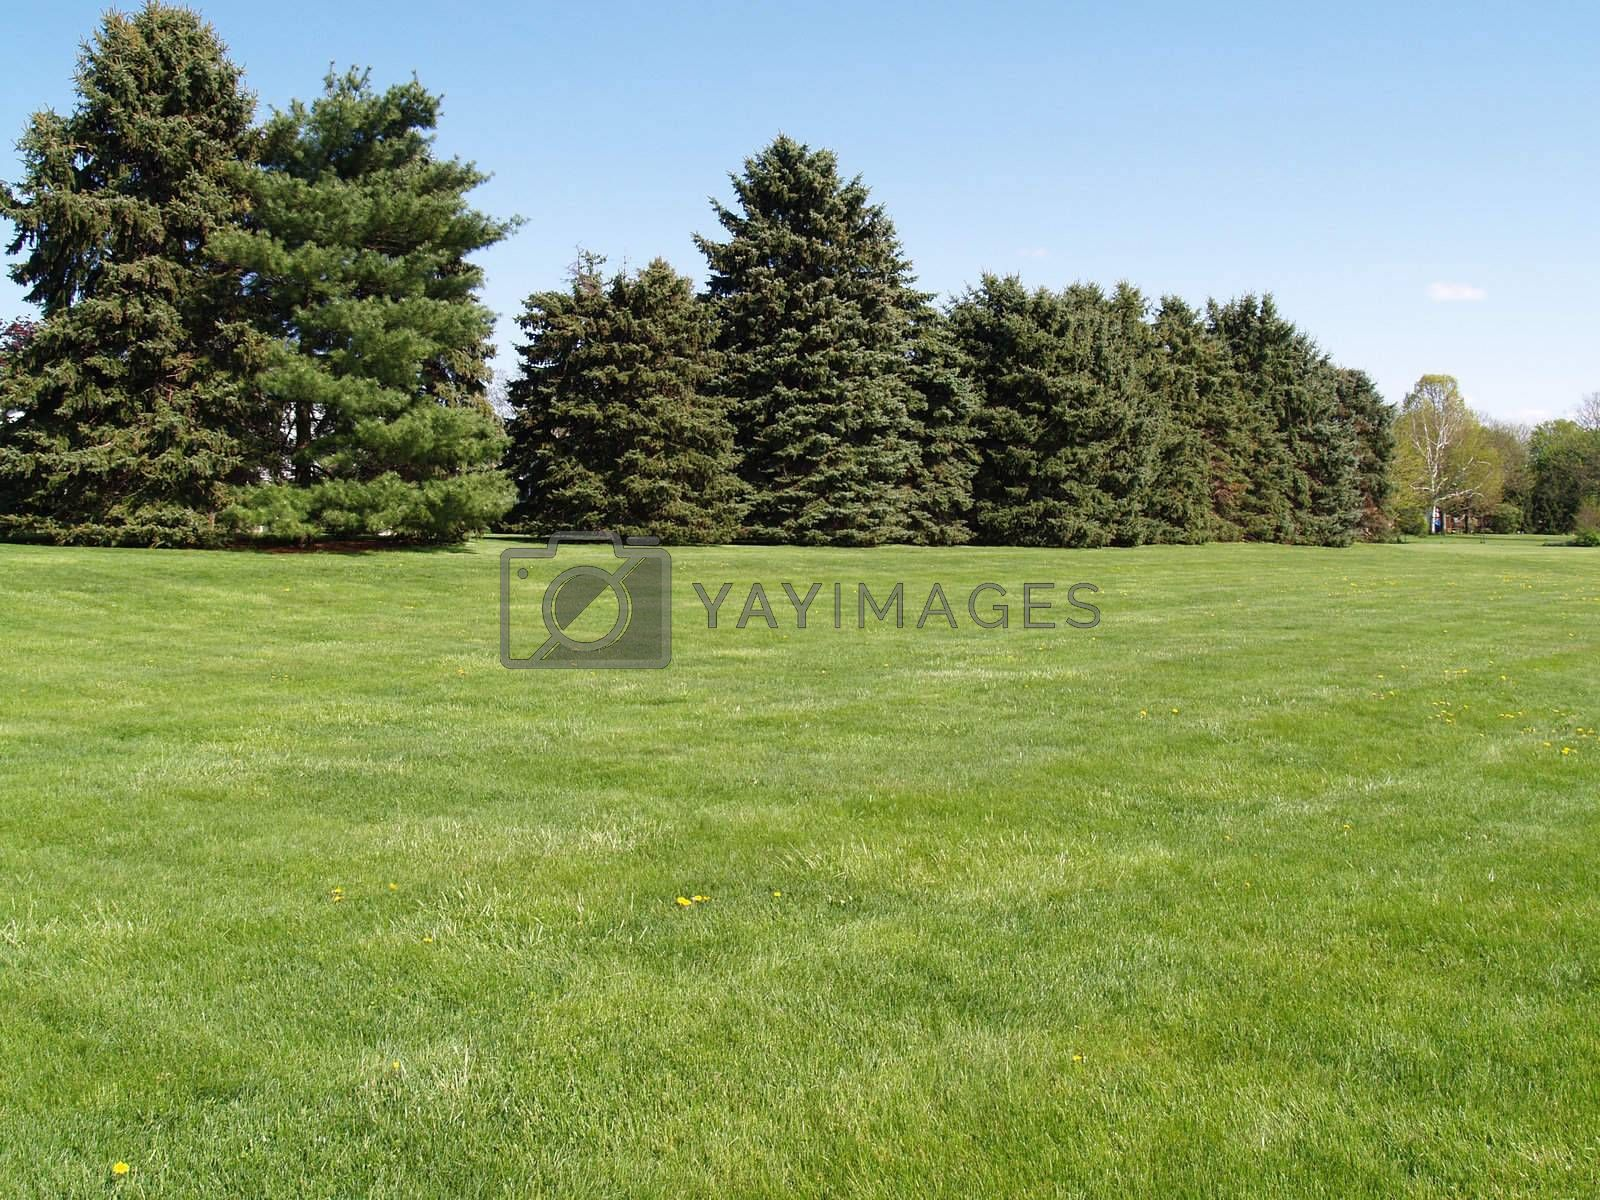 evergreen trees by a green lawn with a blue sky in the background